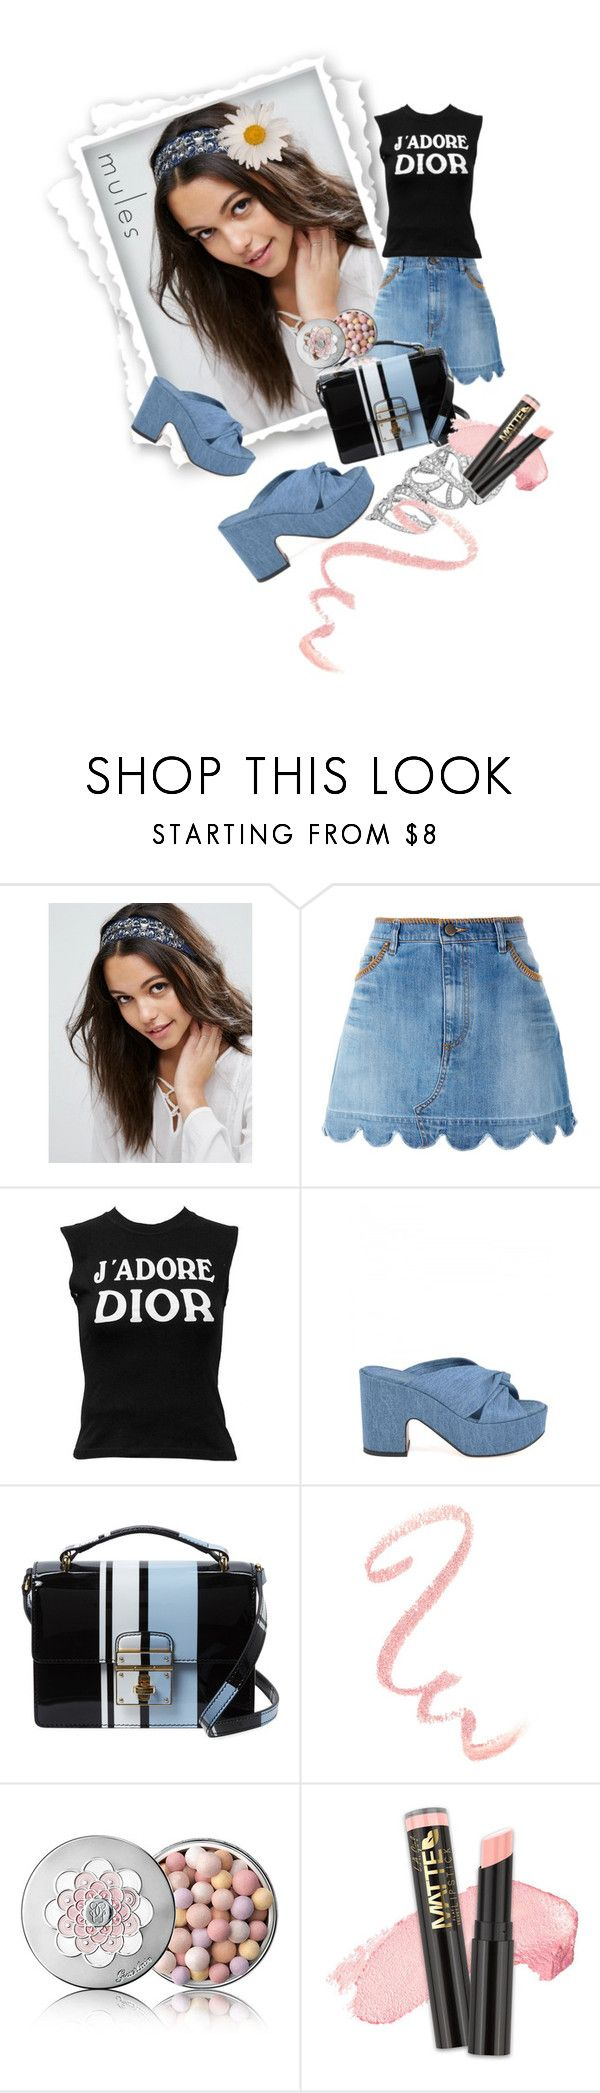 """Slip 'Em On: Mules"" by kari-c ❤ liked on Polyvore featuring ASOS, RED Valentino, Christian Dior, Robert Clergerie, Dolce&Gabbana, Guerlain, L.A. Girl and mules"